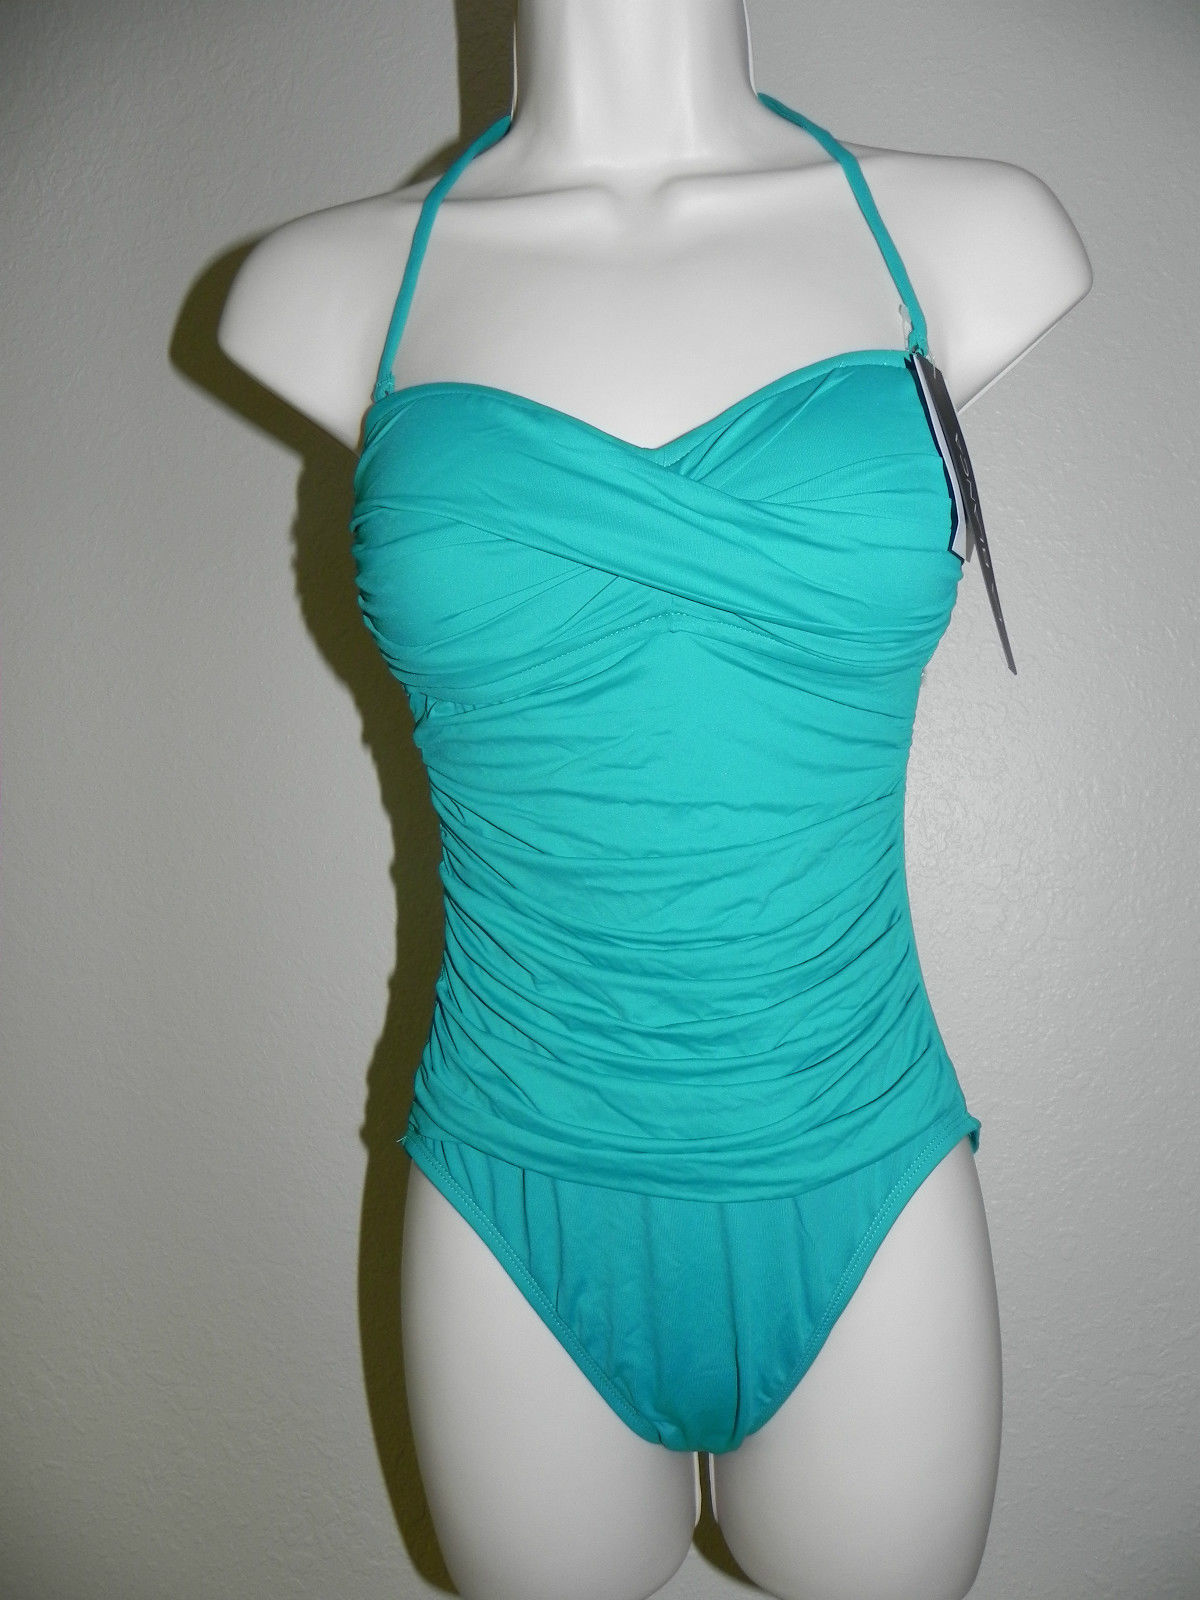 Primary image for La Blanca Swimsuit 1pc Size 6 SGL Style LB4KV20 NWT $109